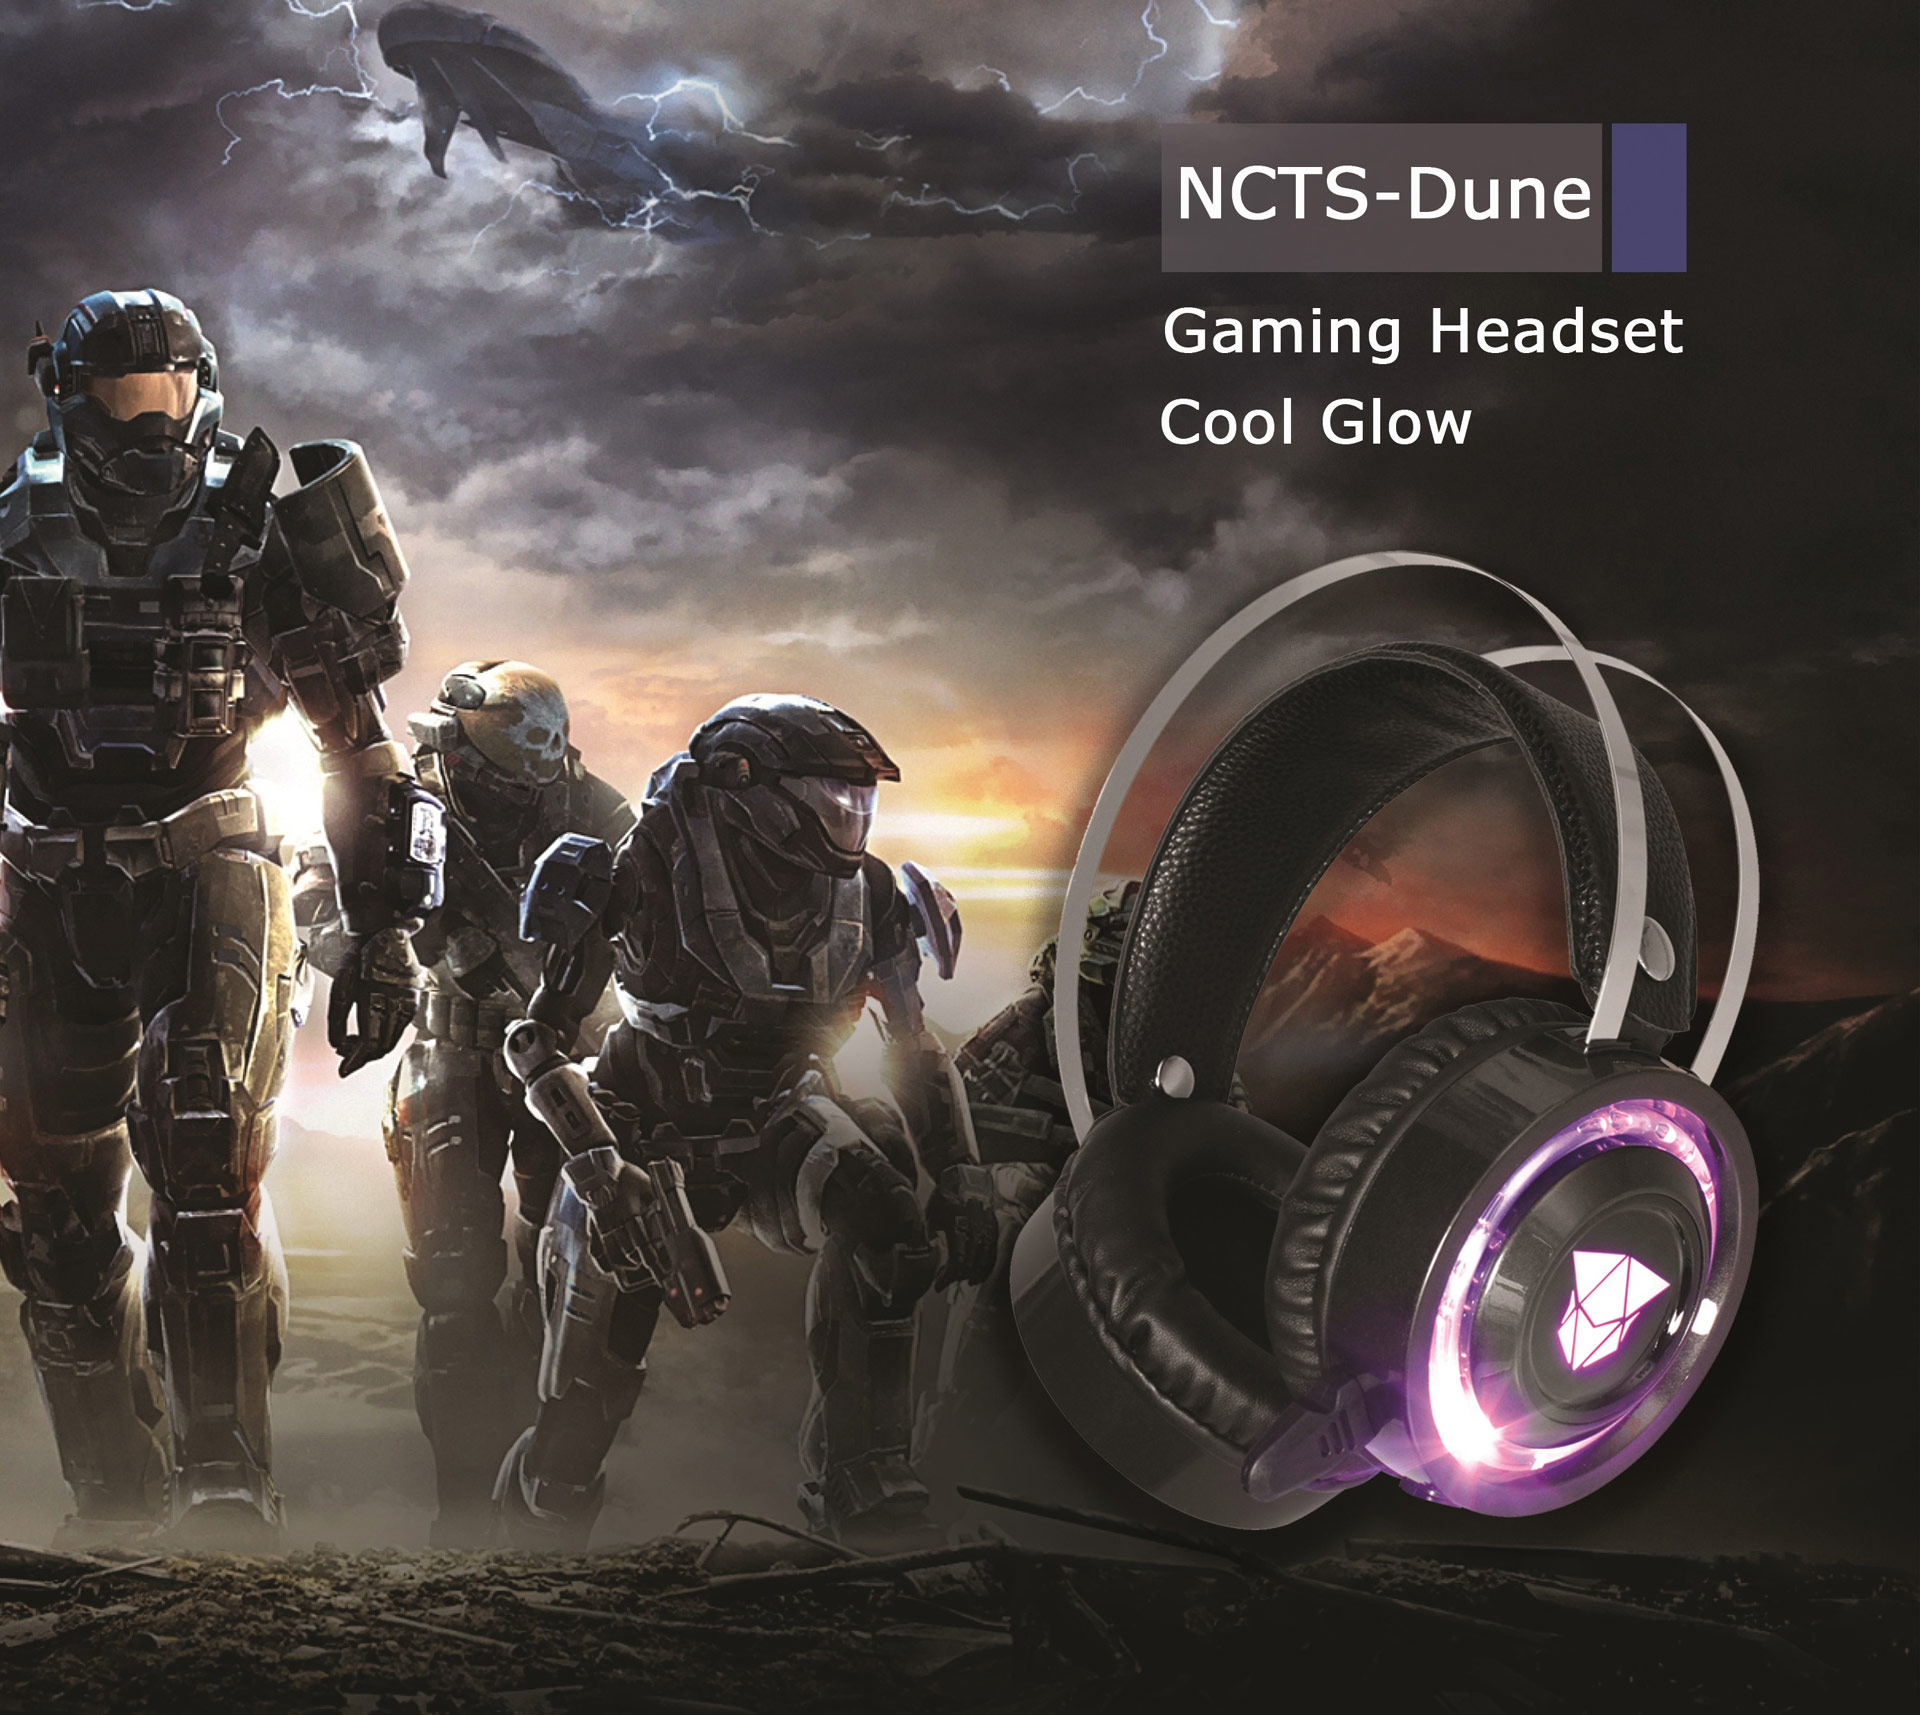 NCTS DUNE GAMING HEADSET